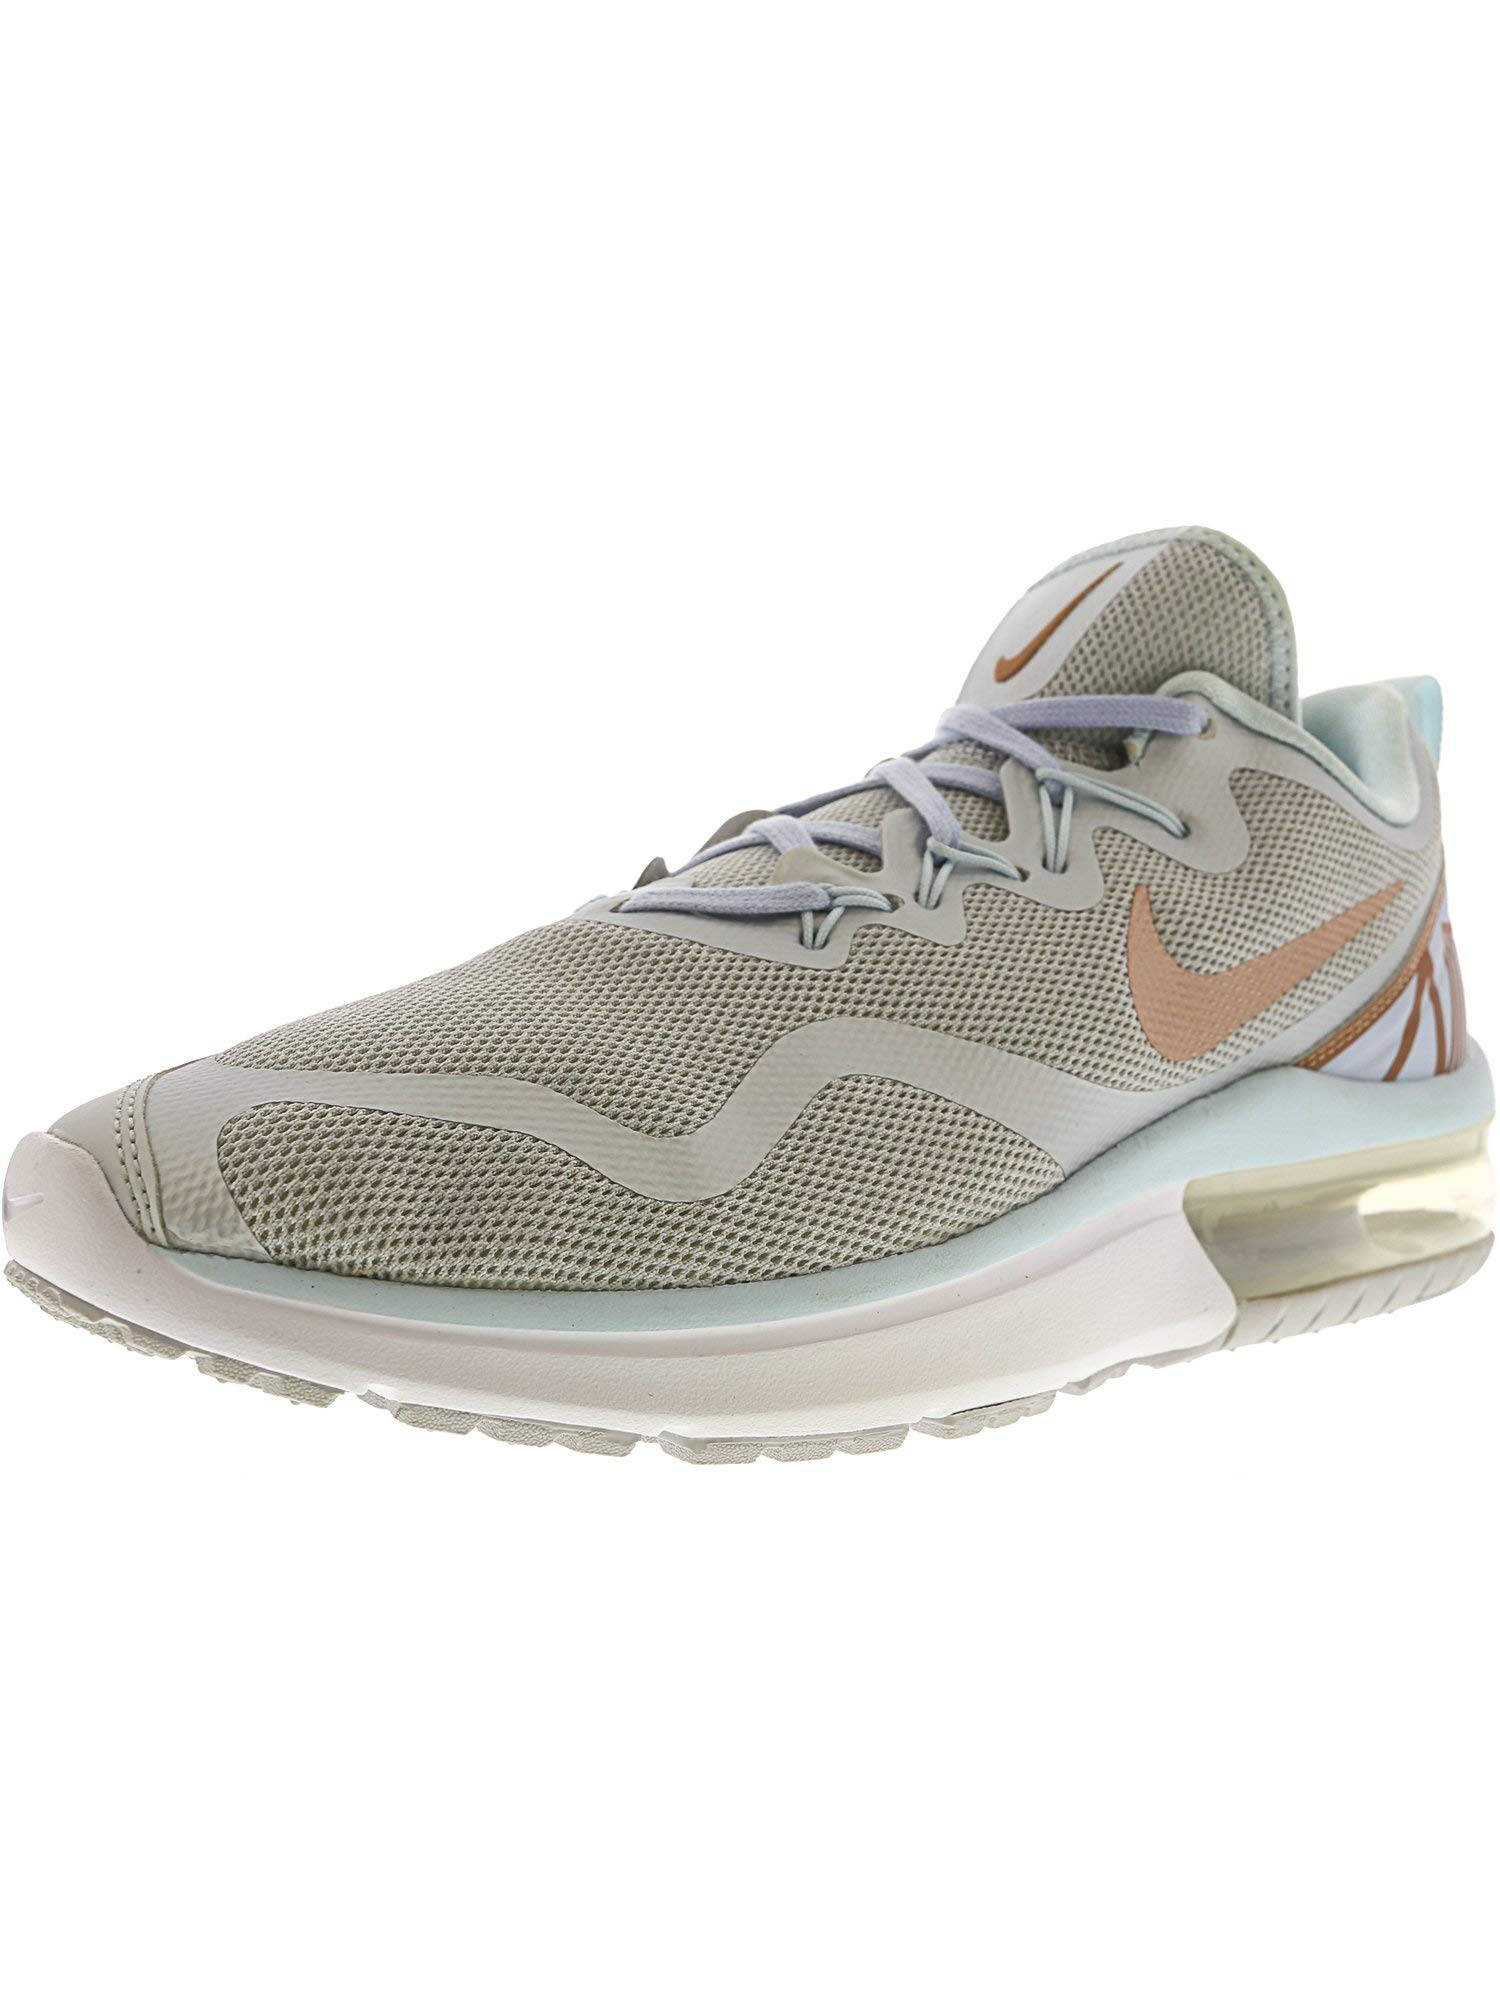 9ff3252f59bf55 Galleon - NIKE Womens Air Max Fury Running Shoes (8.5 B(M) US